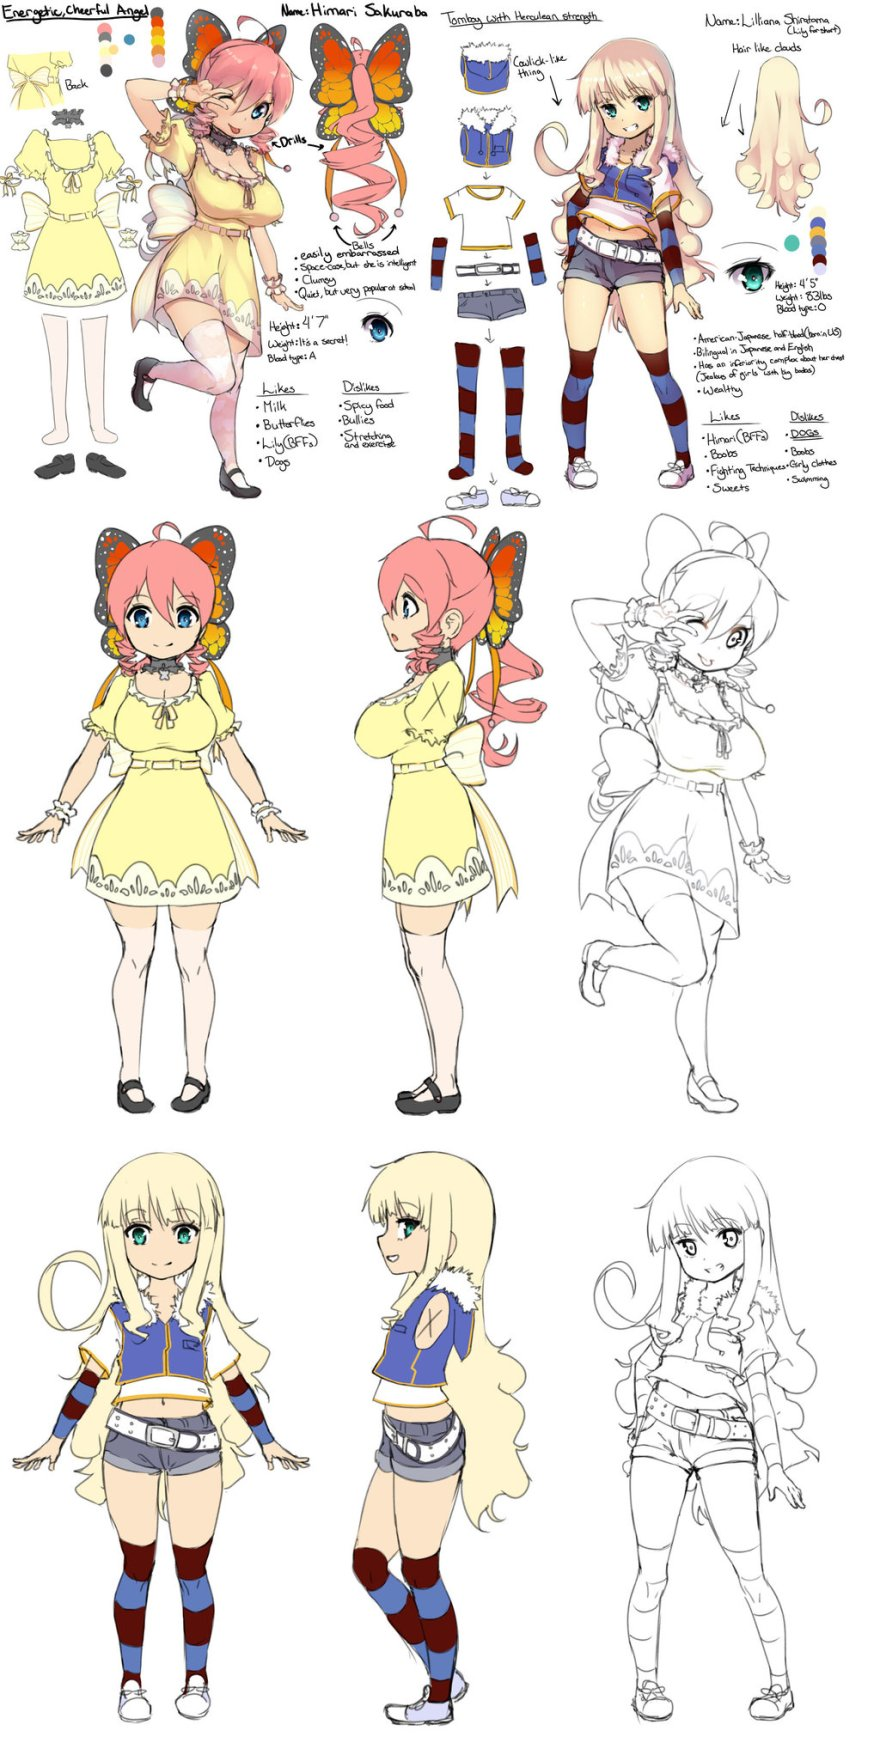 himari_and_lily_reference_sheet_by_mw_magister-d9cd598